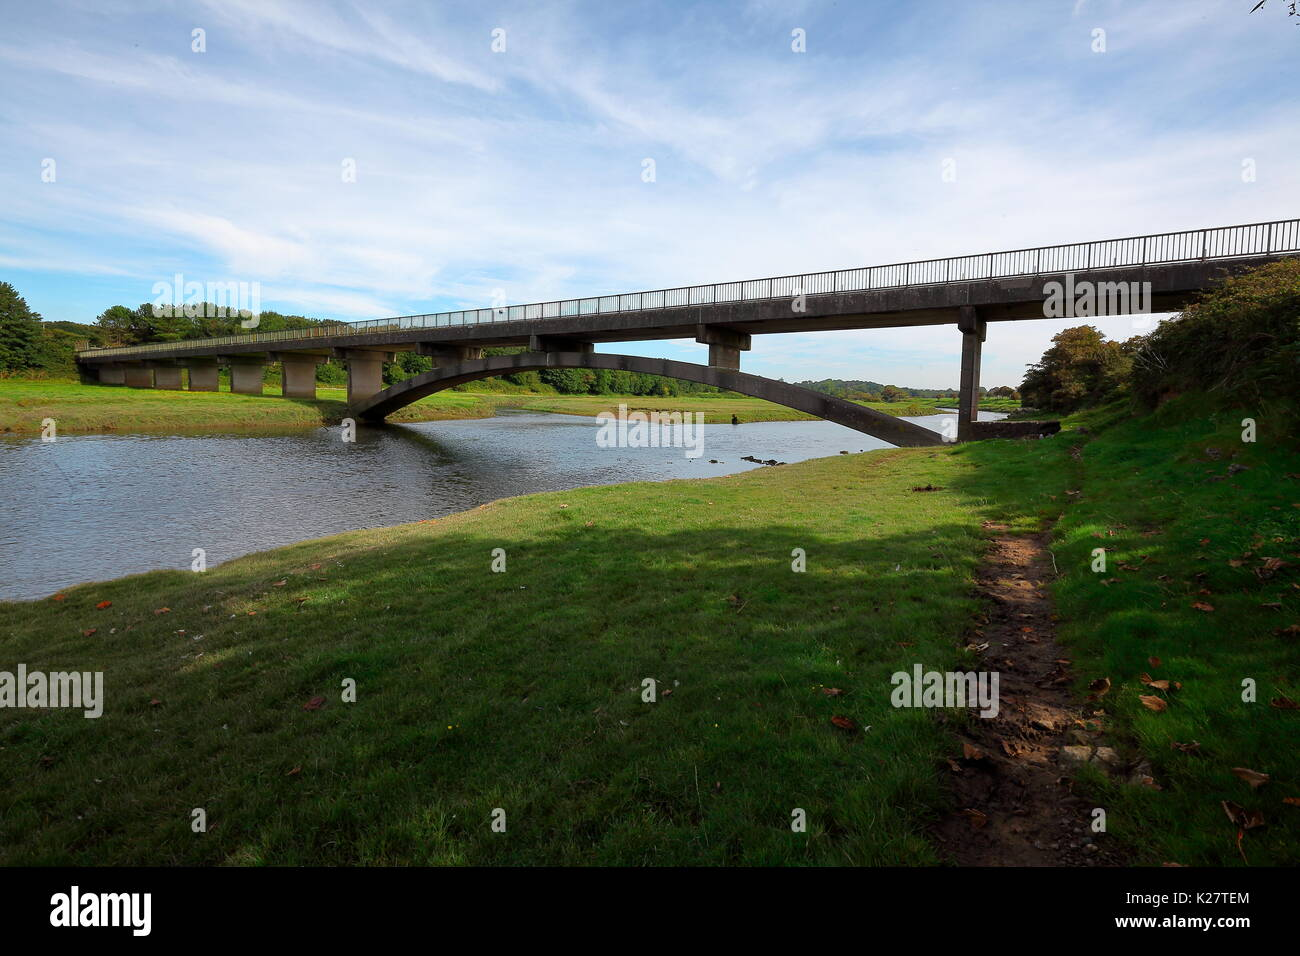 The Welsh water road bridge to allow access to the Ogmore sewerage plant on the opposite bank of the river Ogmore. Stock Photo